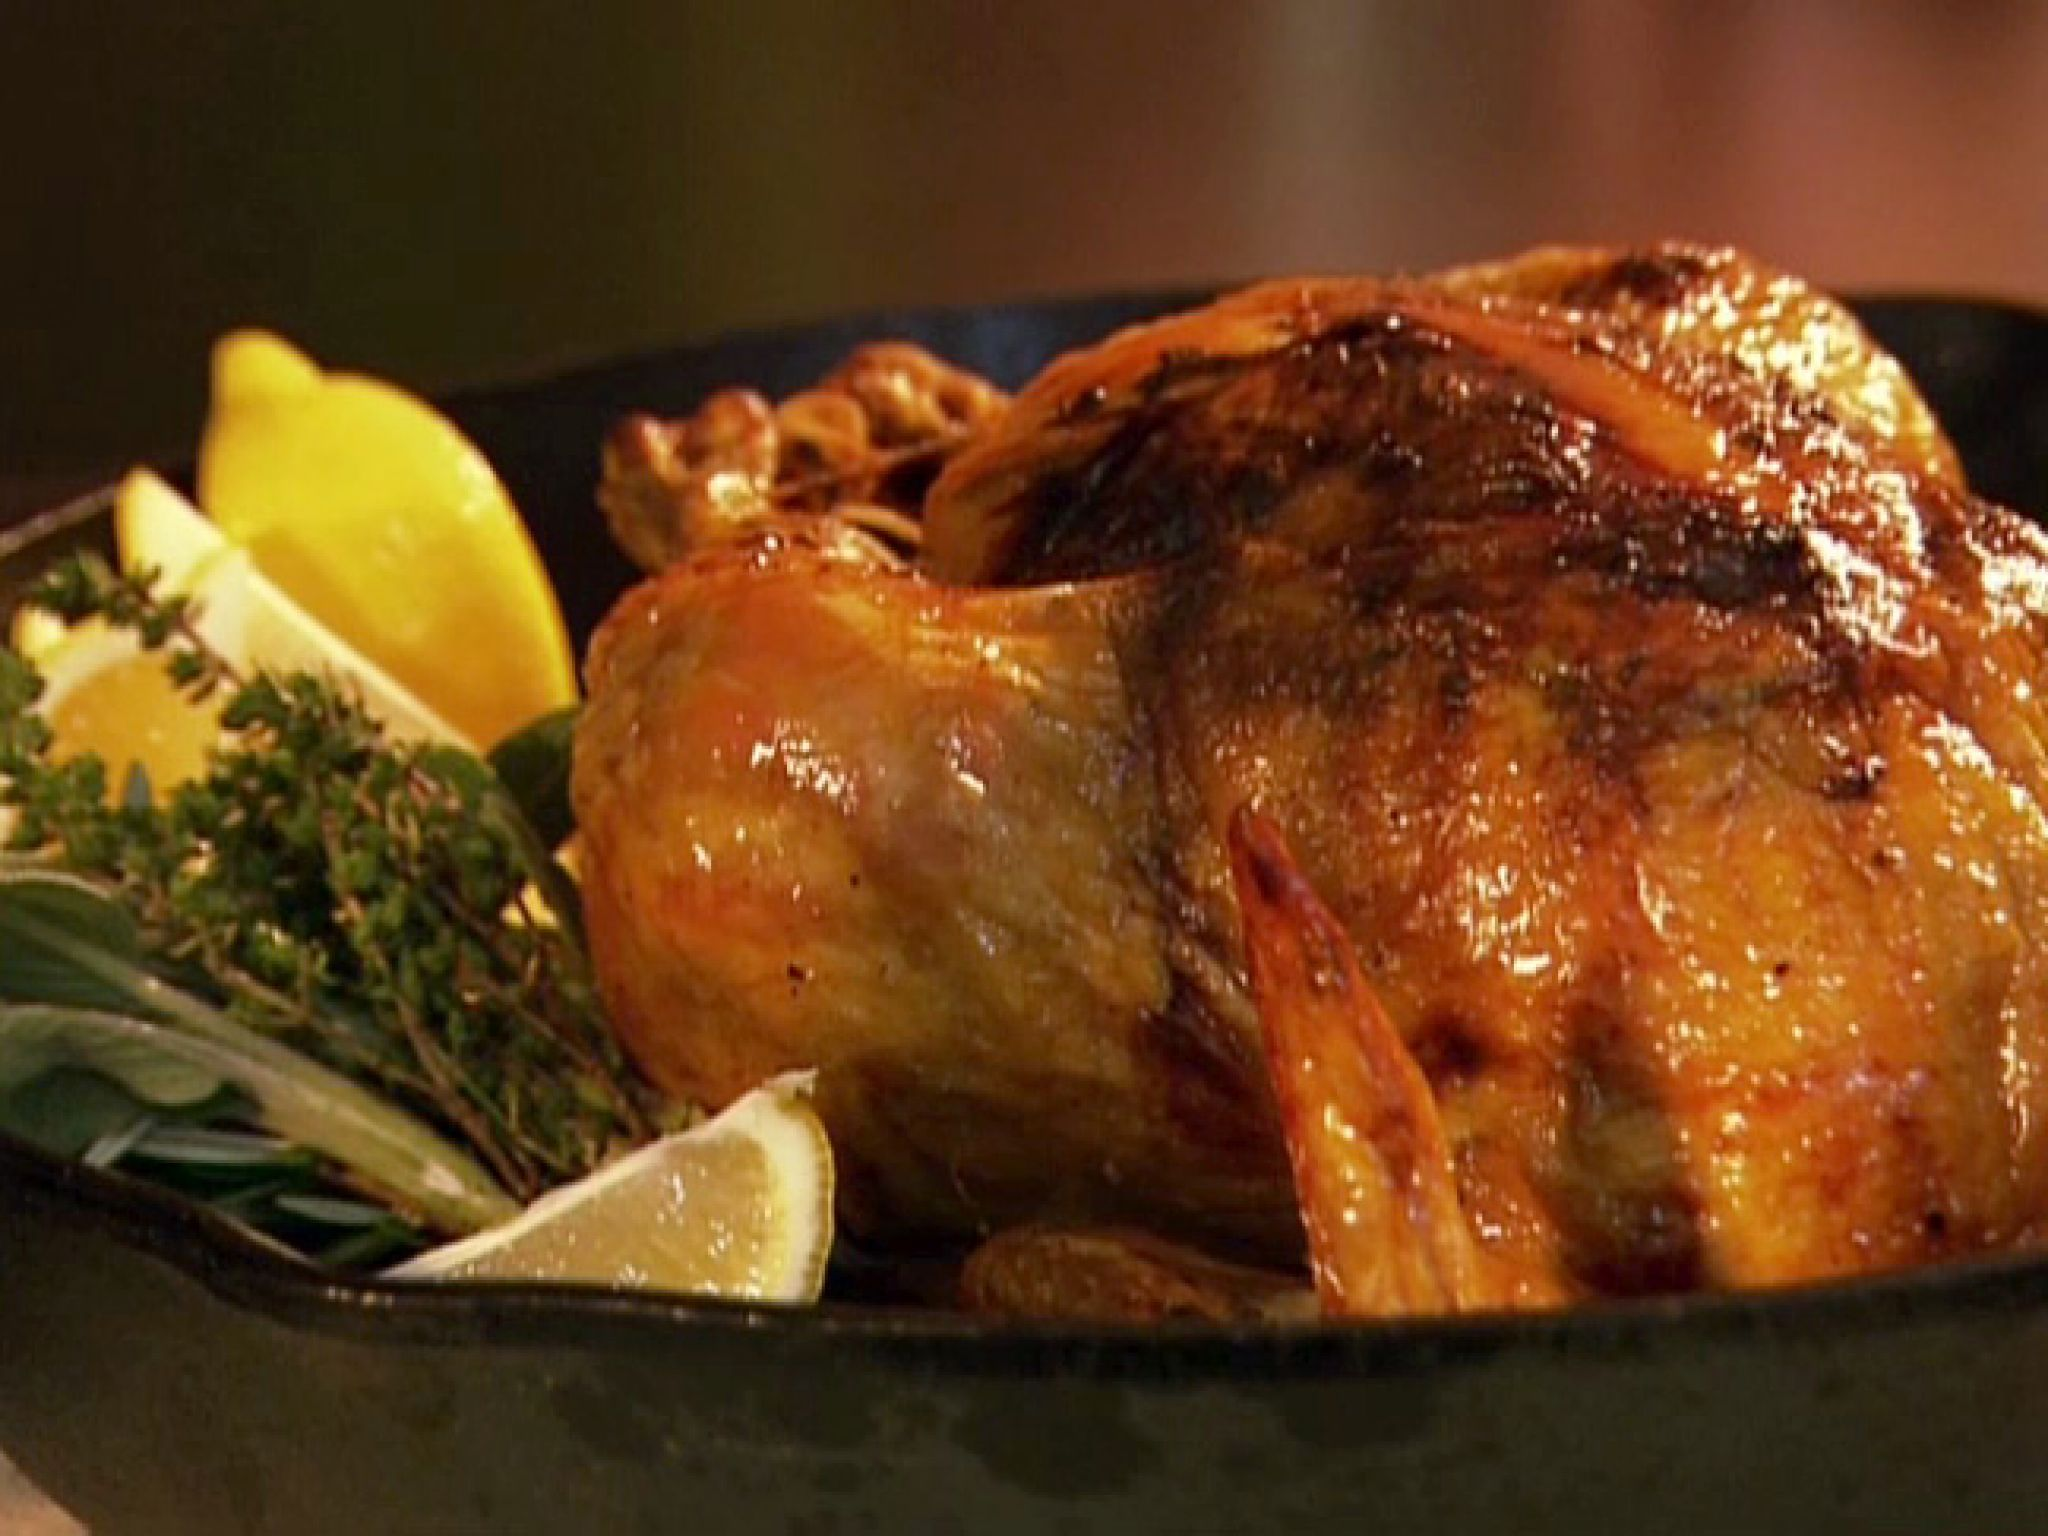 Ginas perfect roast chicken with gravy recipe perfect roast ginas perfect roast chicken with gravy recipe perfect roast chicken gravy and recipes forumfinder Image collections